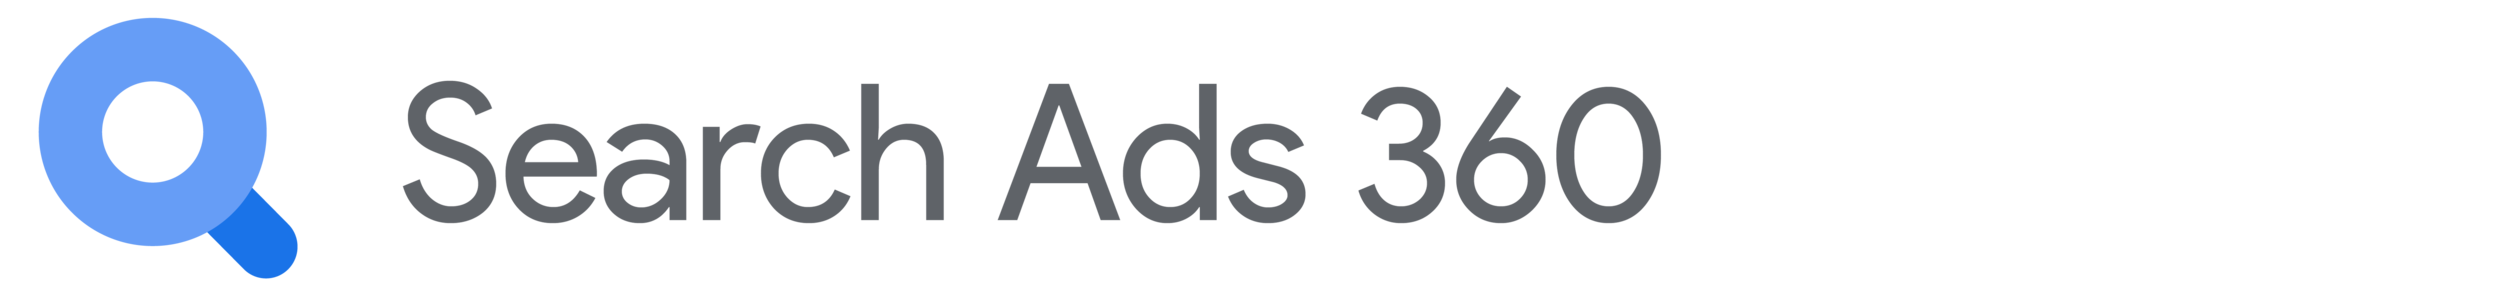 SearchAds360_01.png